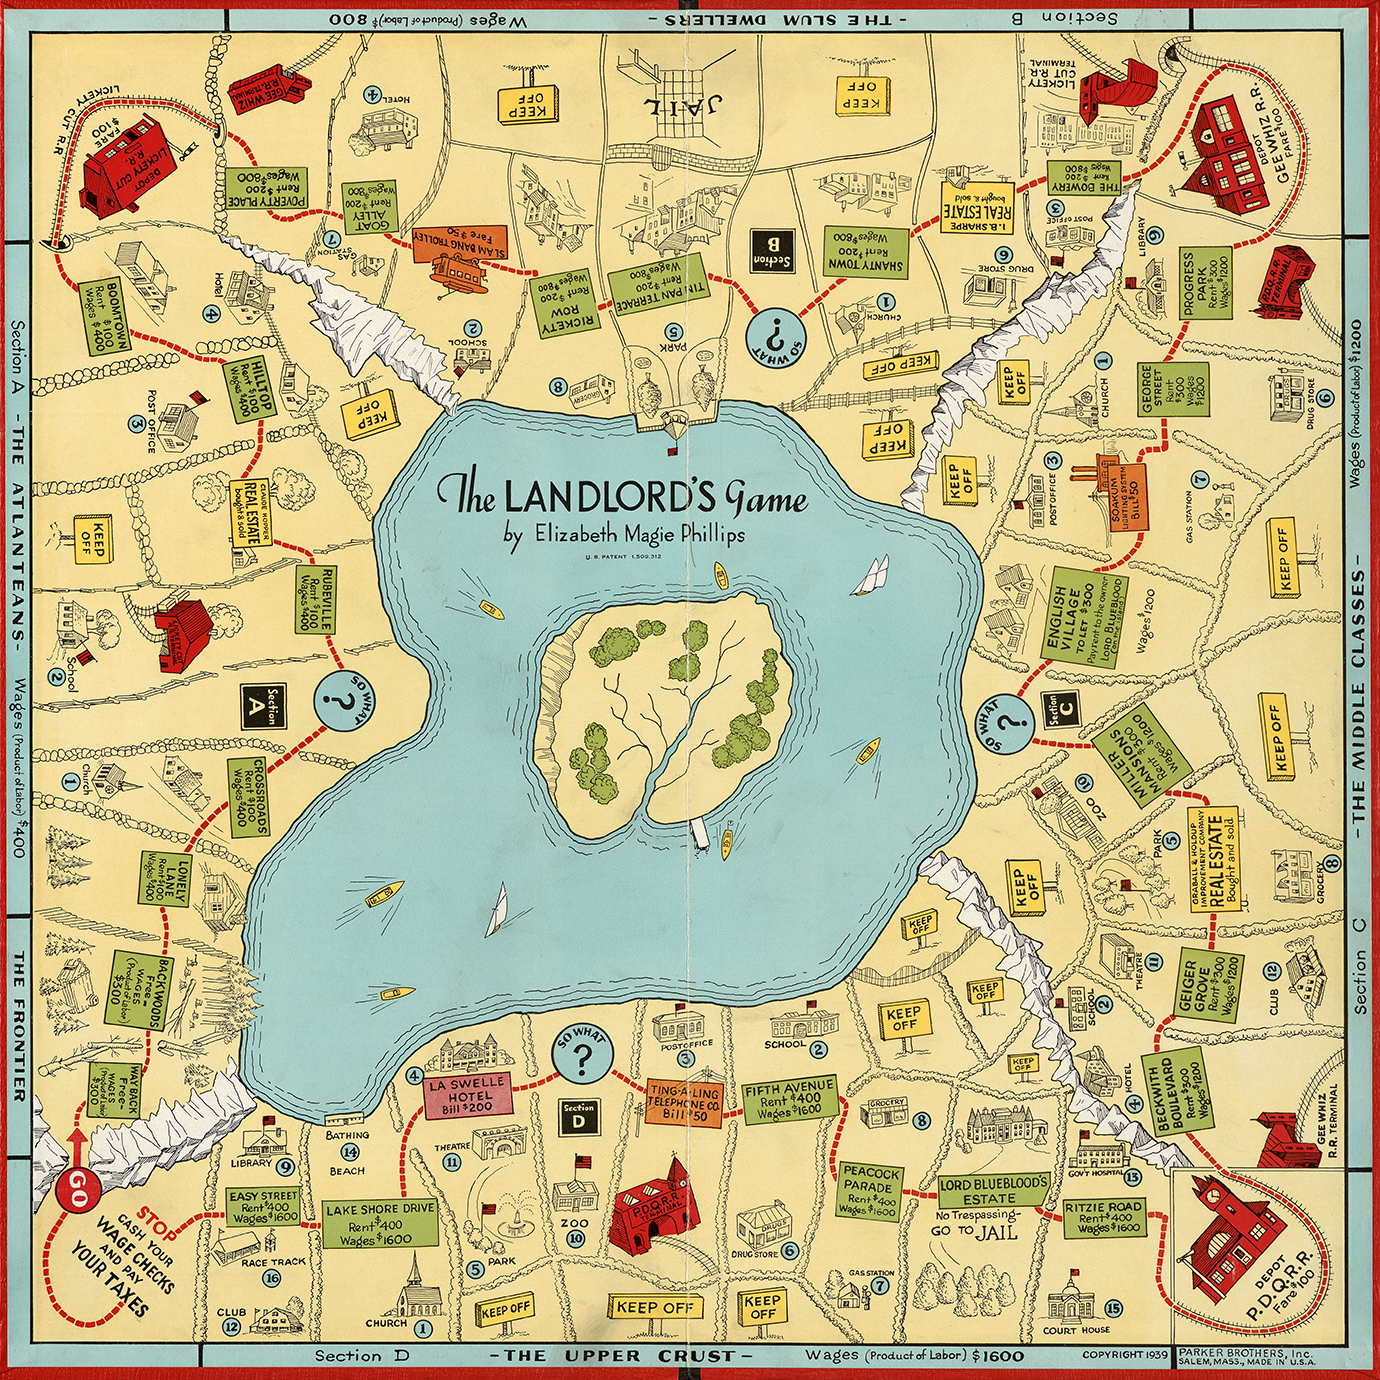 The version of the Landlord's Game released in 1939 by Parker Brothers.